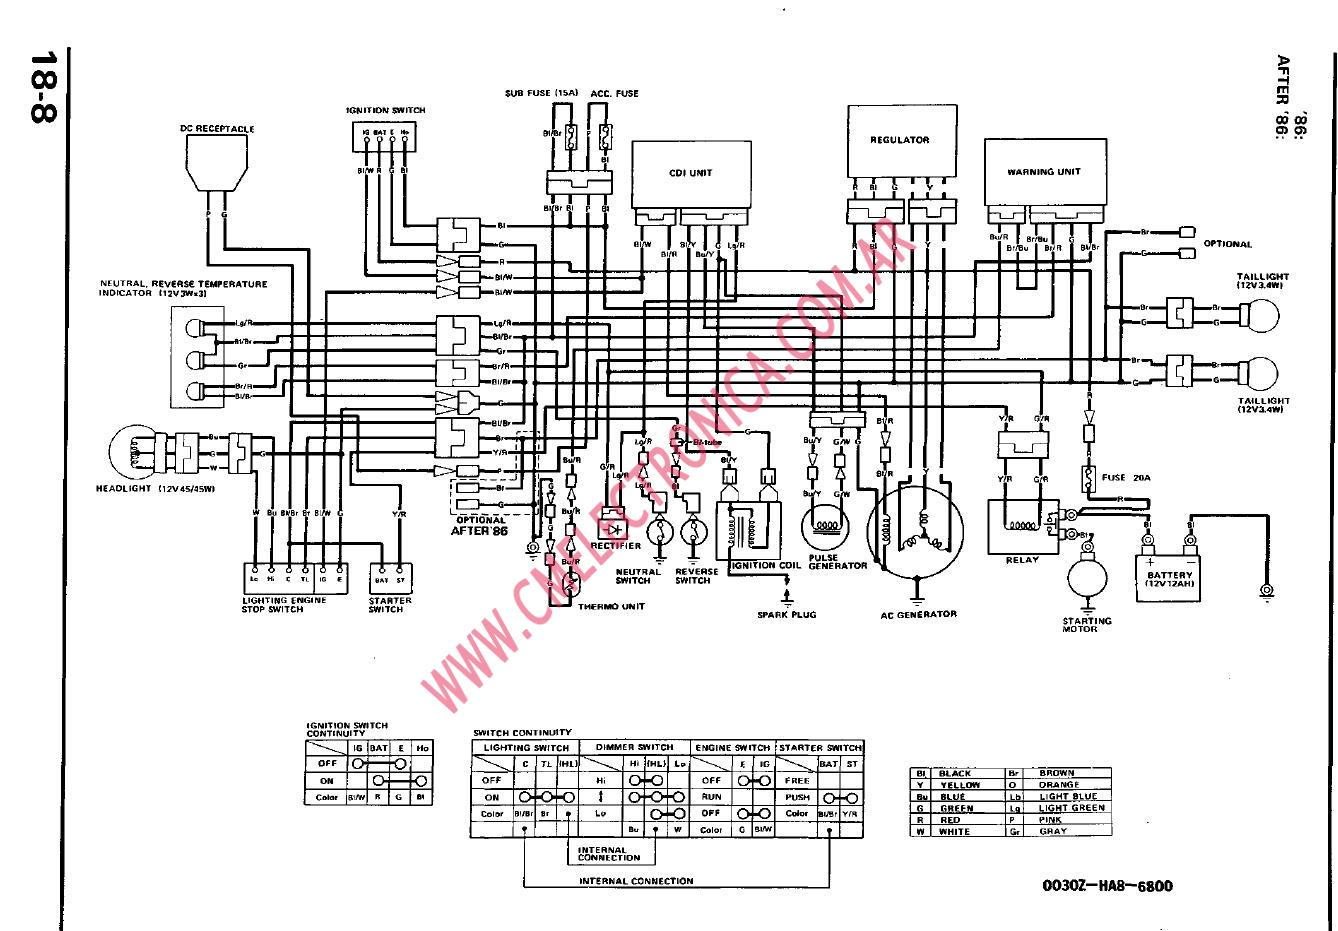 Honda Recon 250 Parts Diagram on 1986 Honda Trx 250 Wiring Diagram